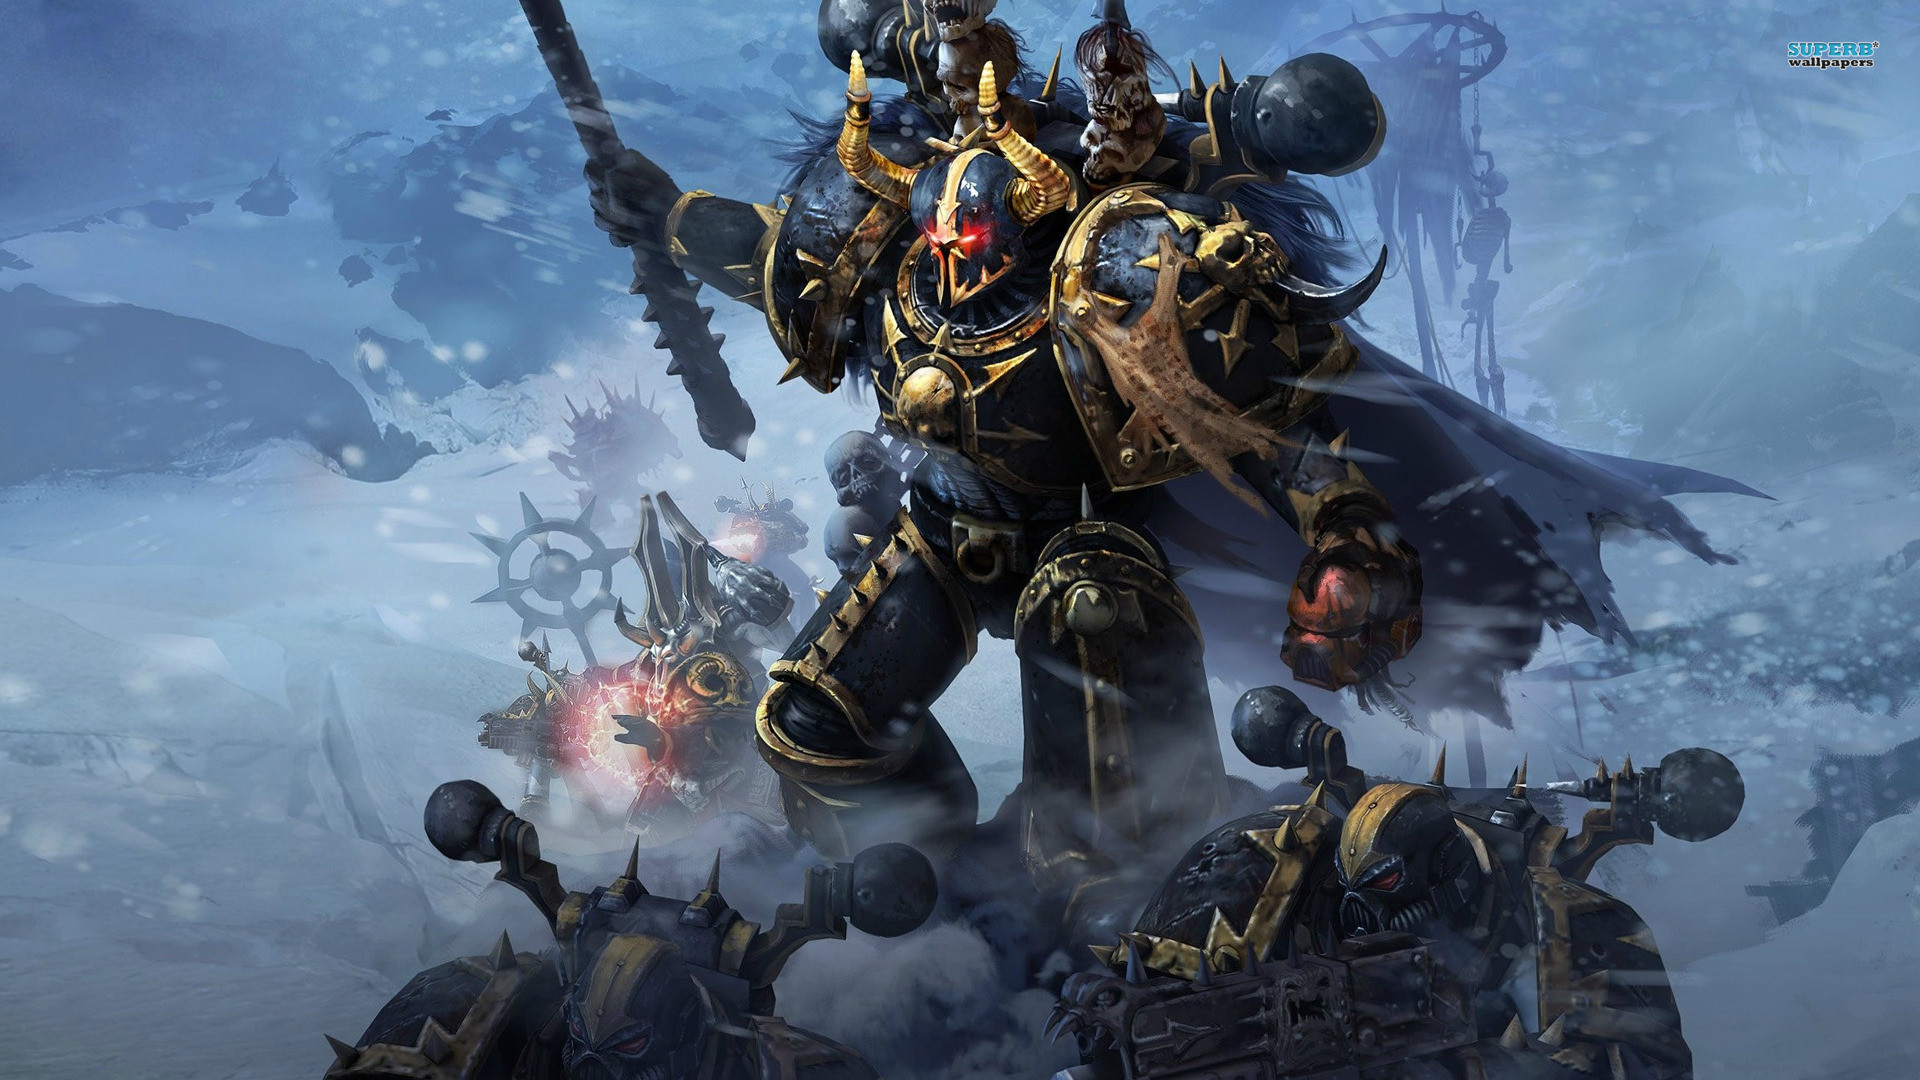 1920x1080 chaos wallpaper picture warhammer resolution marine  pichost .